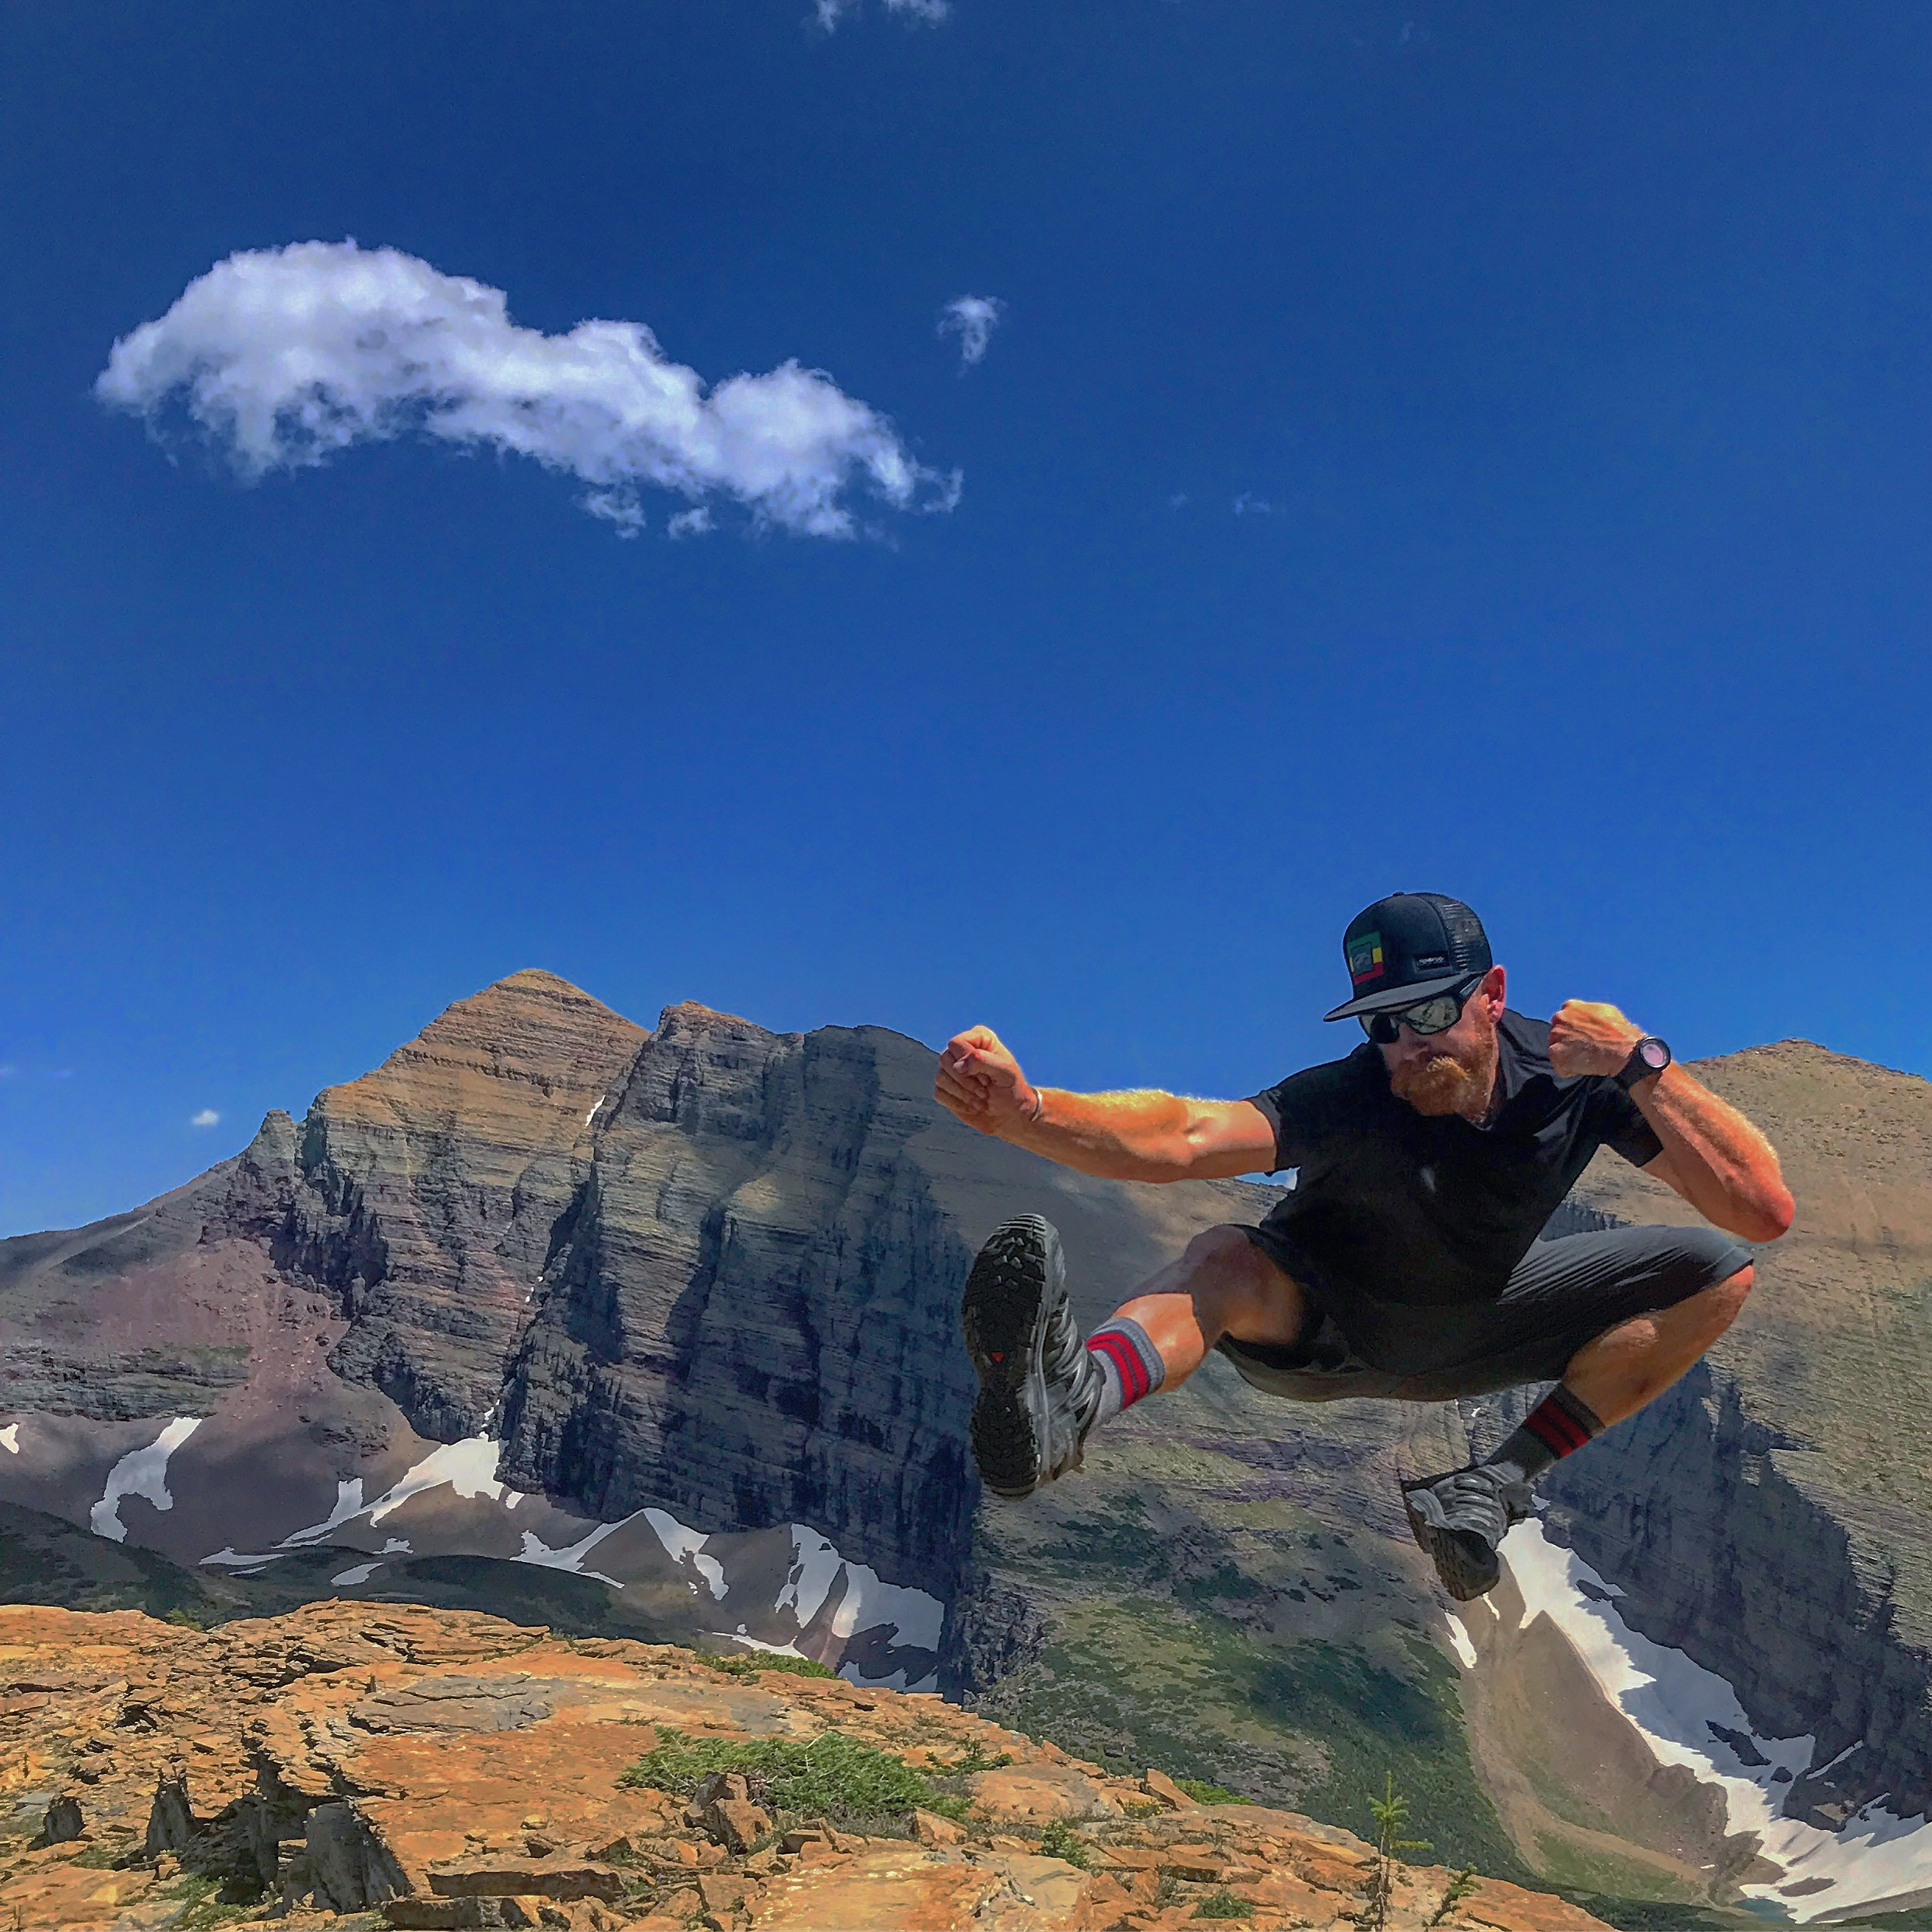 Donovan jumping for joy in Glacier National Park